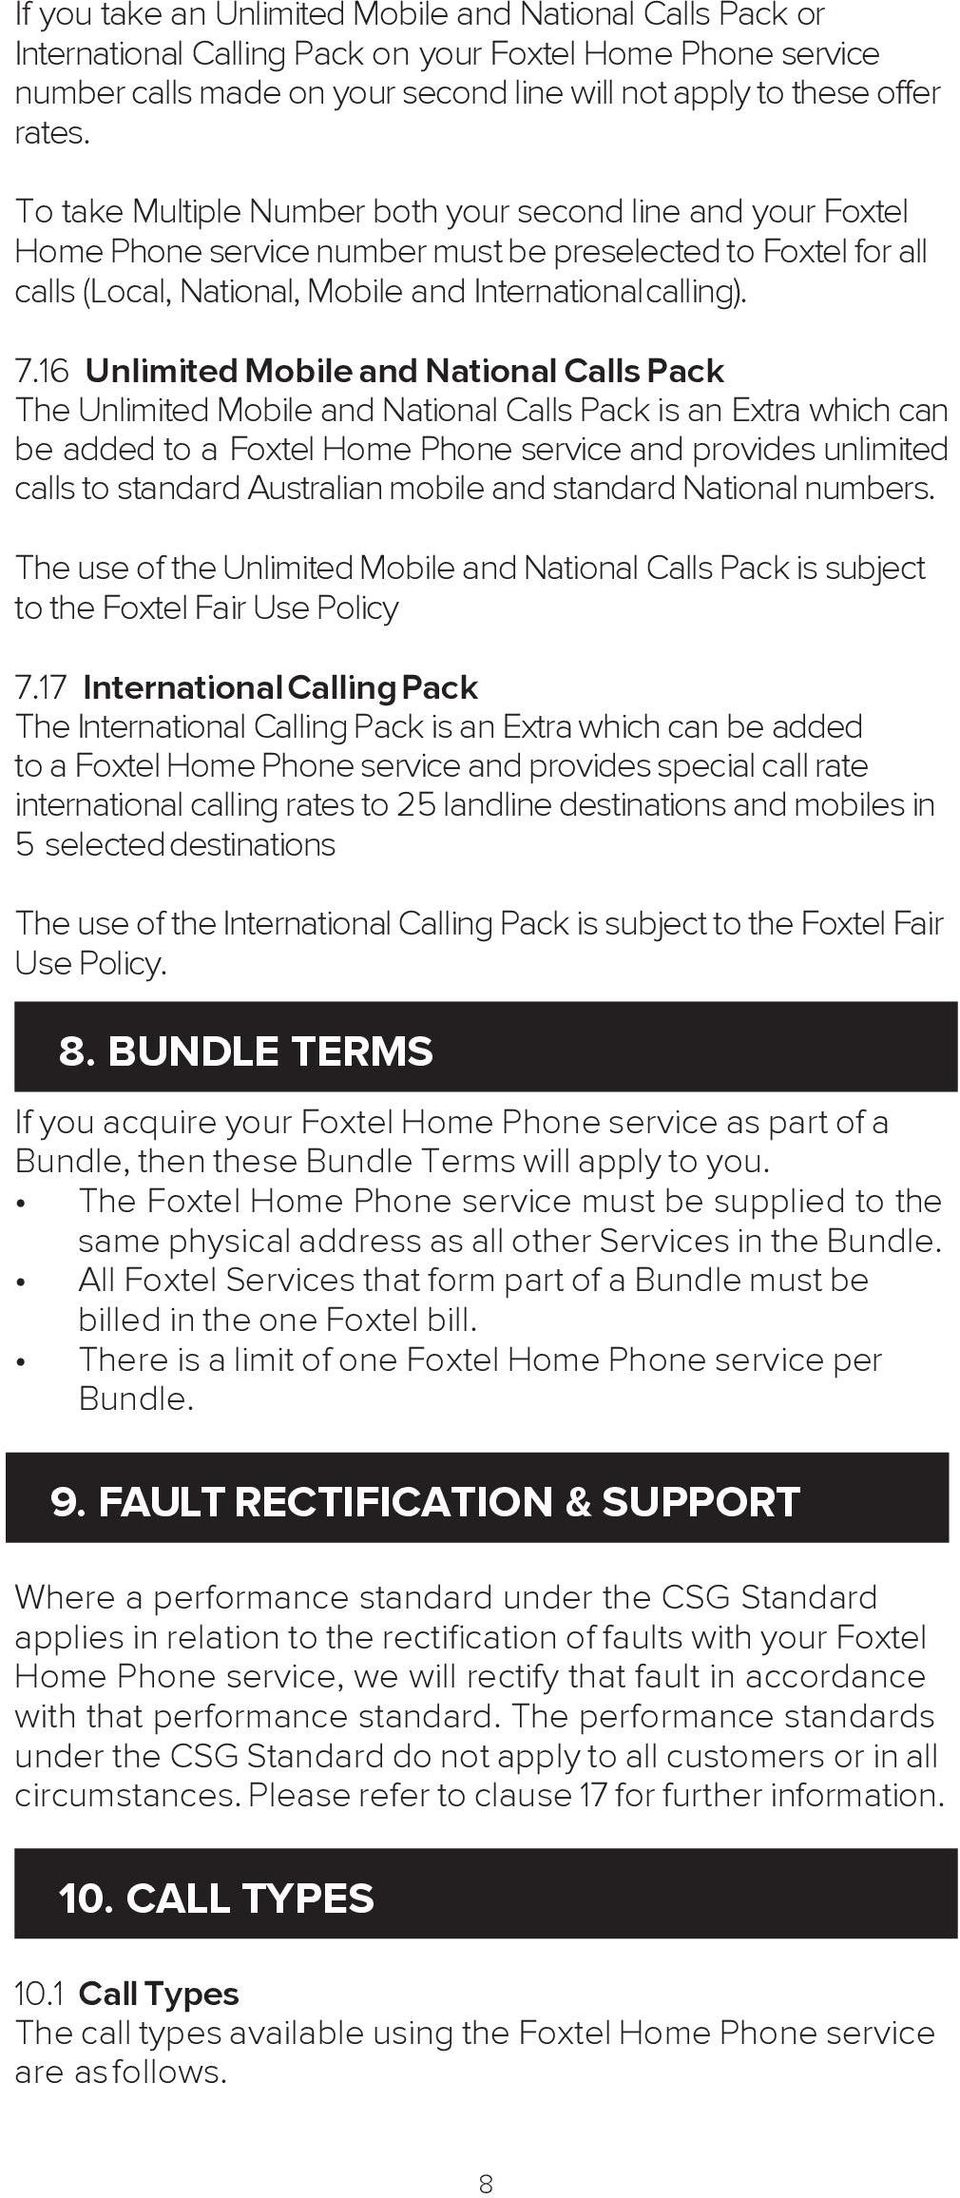 16 Unlimited Mobile and National Calls Pack The Unlimited Mobile and National Calls Pack is an Extra which can be added to a Foxtel Home Phone service and provides unlimited calls to standard